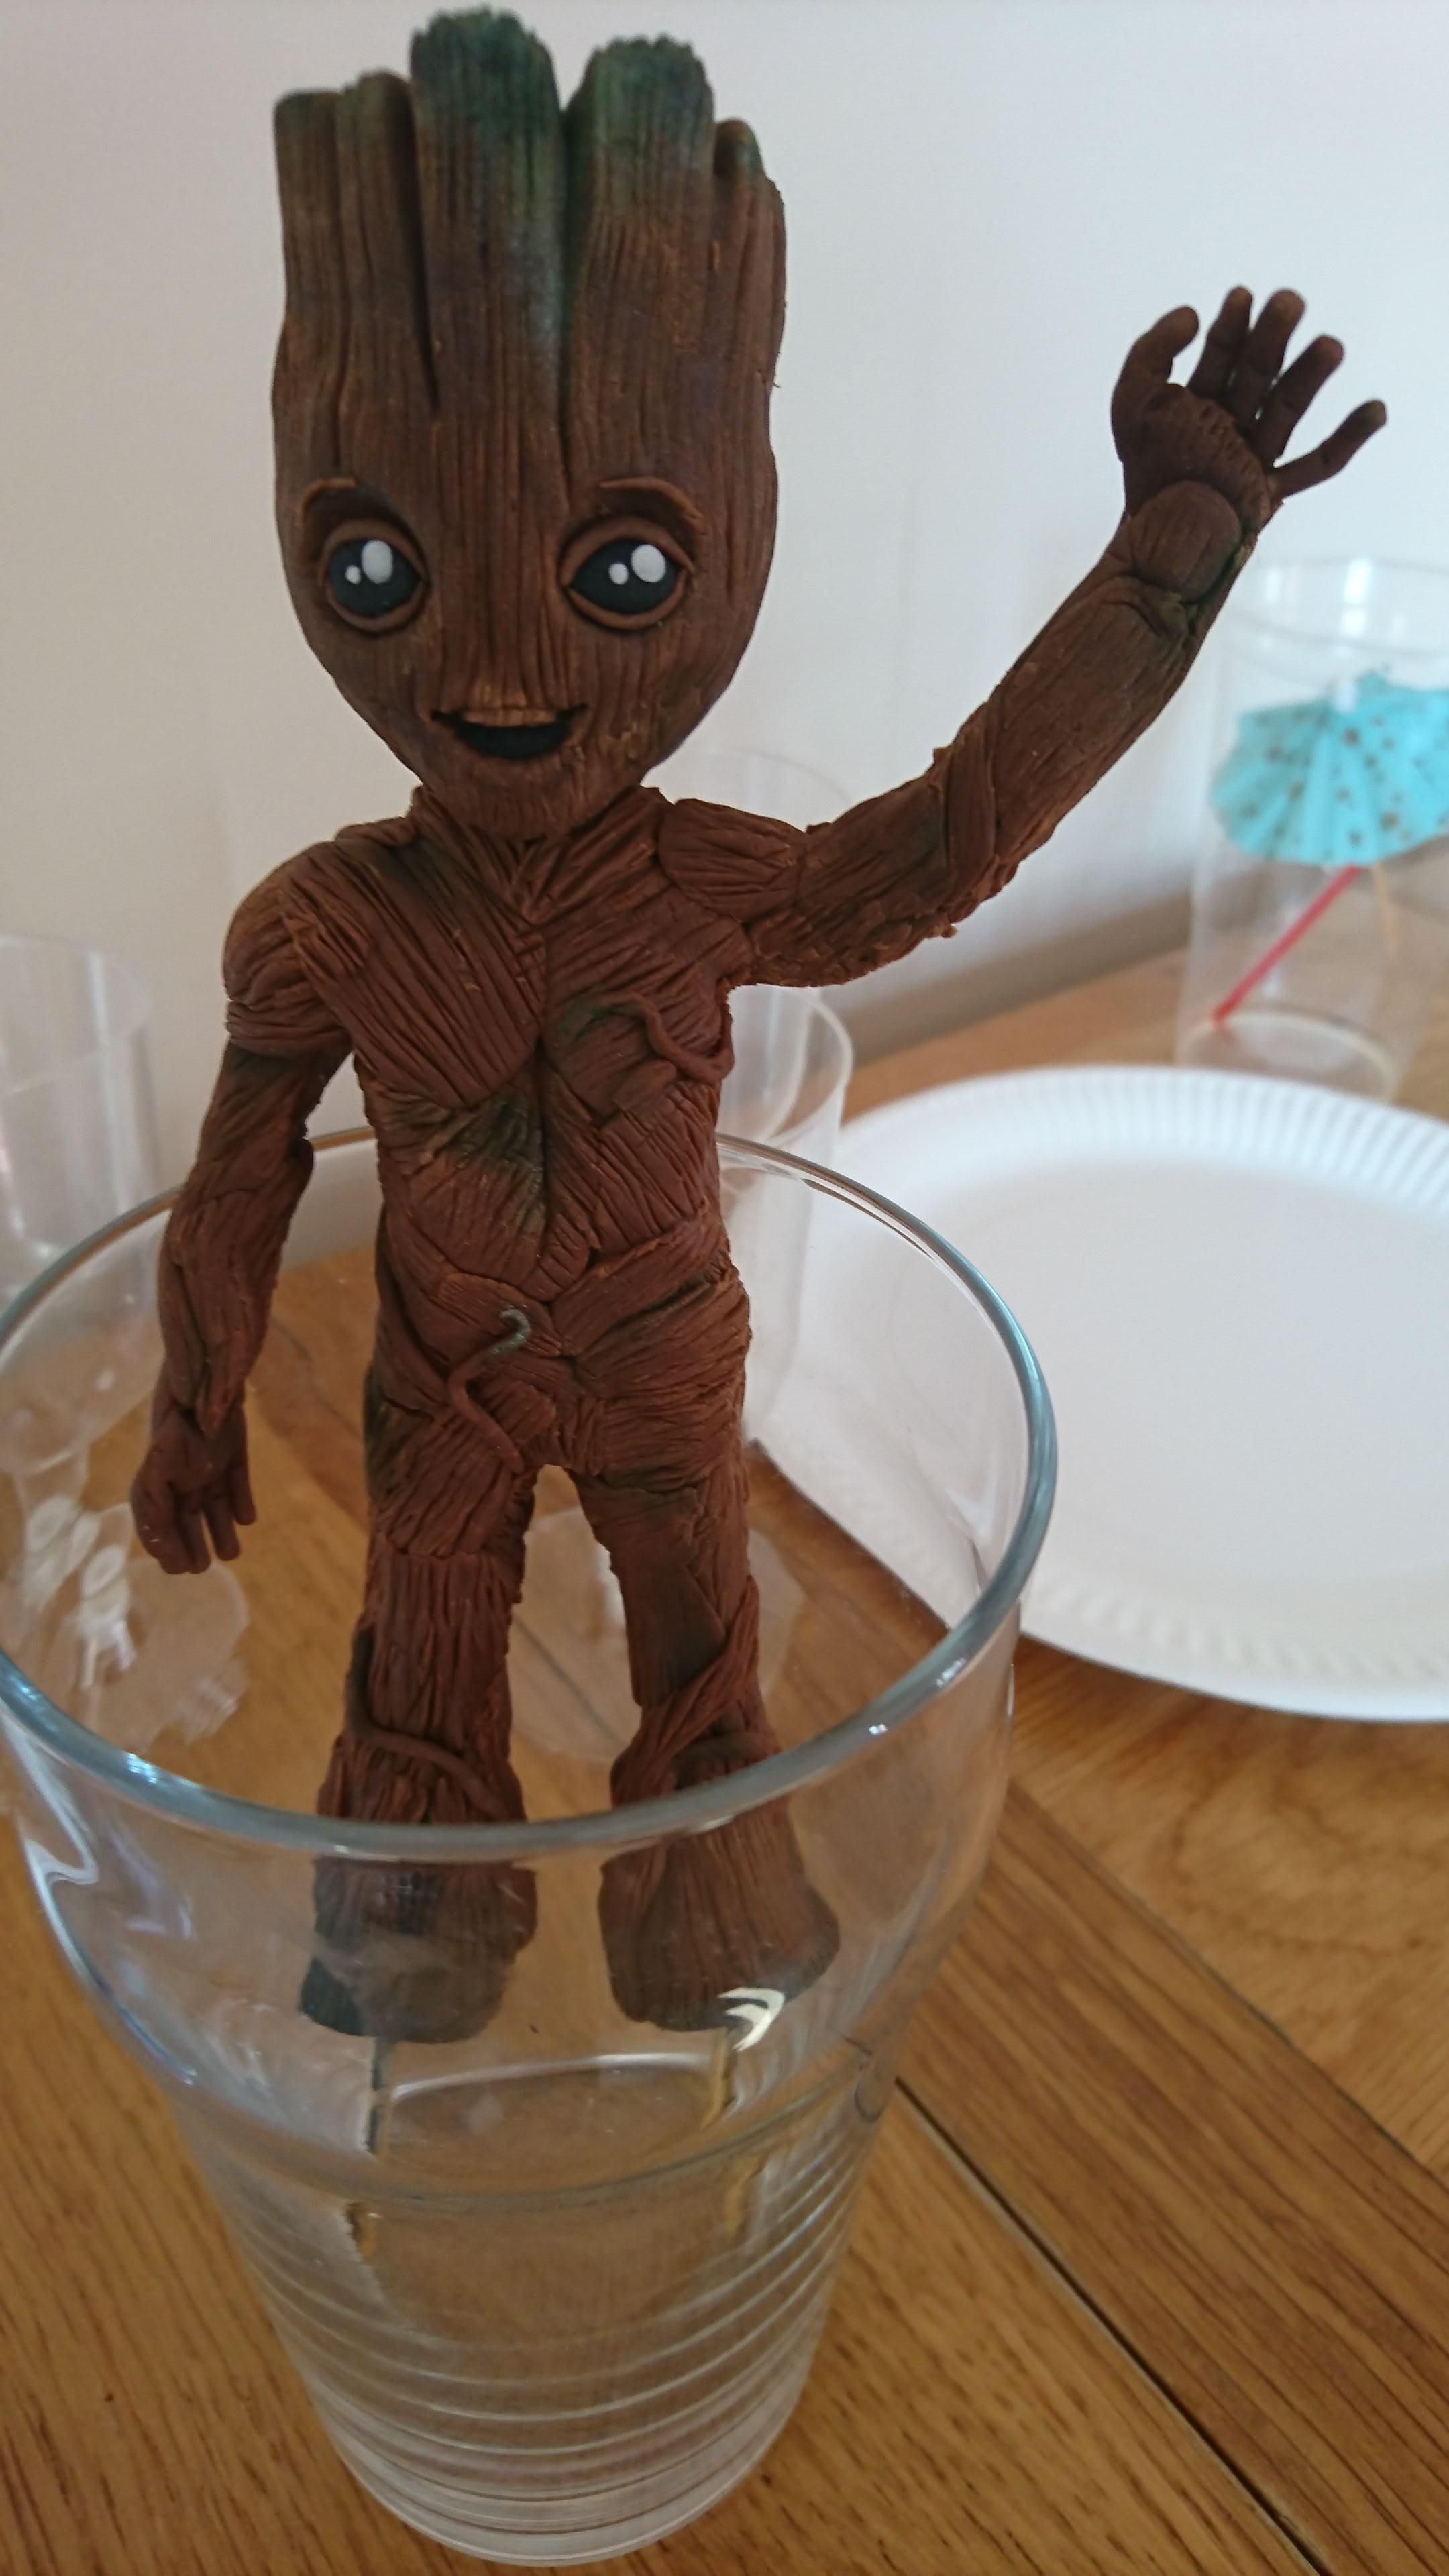 [Homemade] Baby Groot Cake Topper Made From Icing And Wire